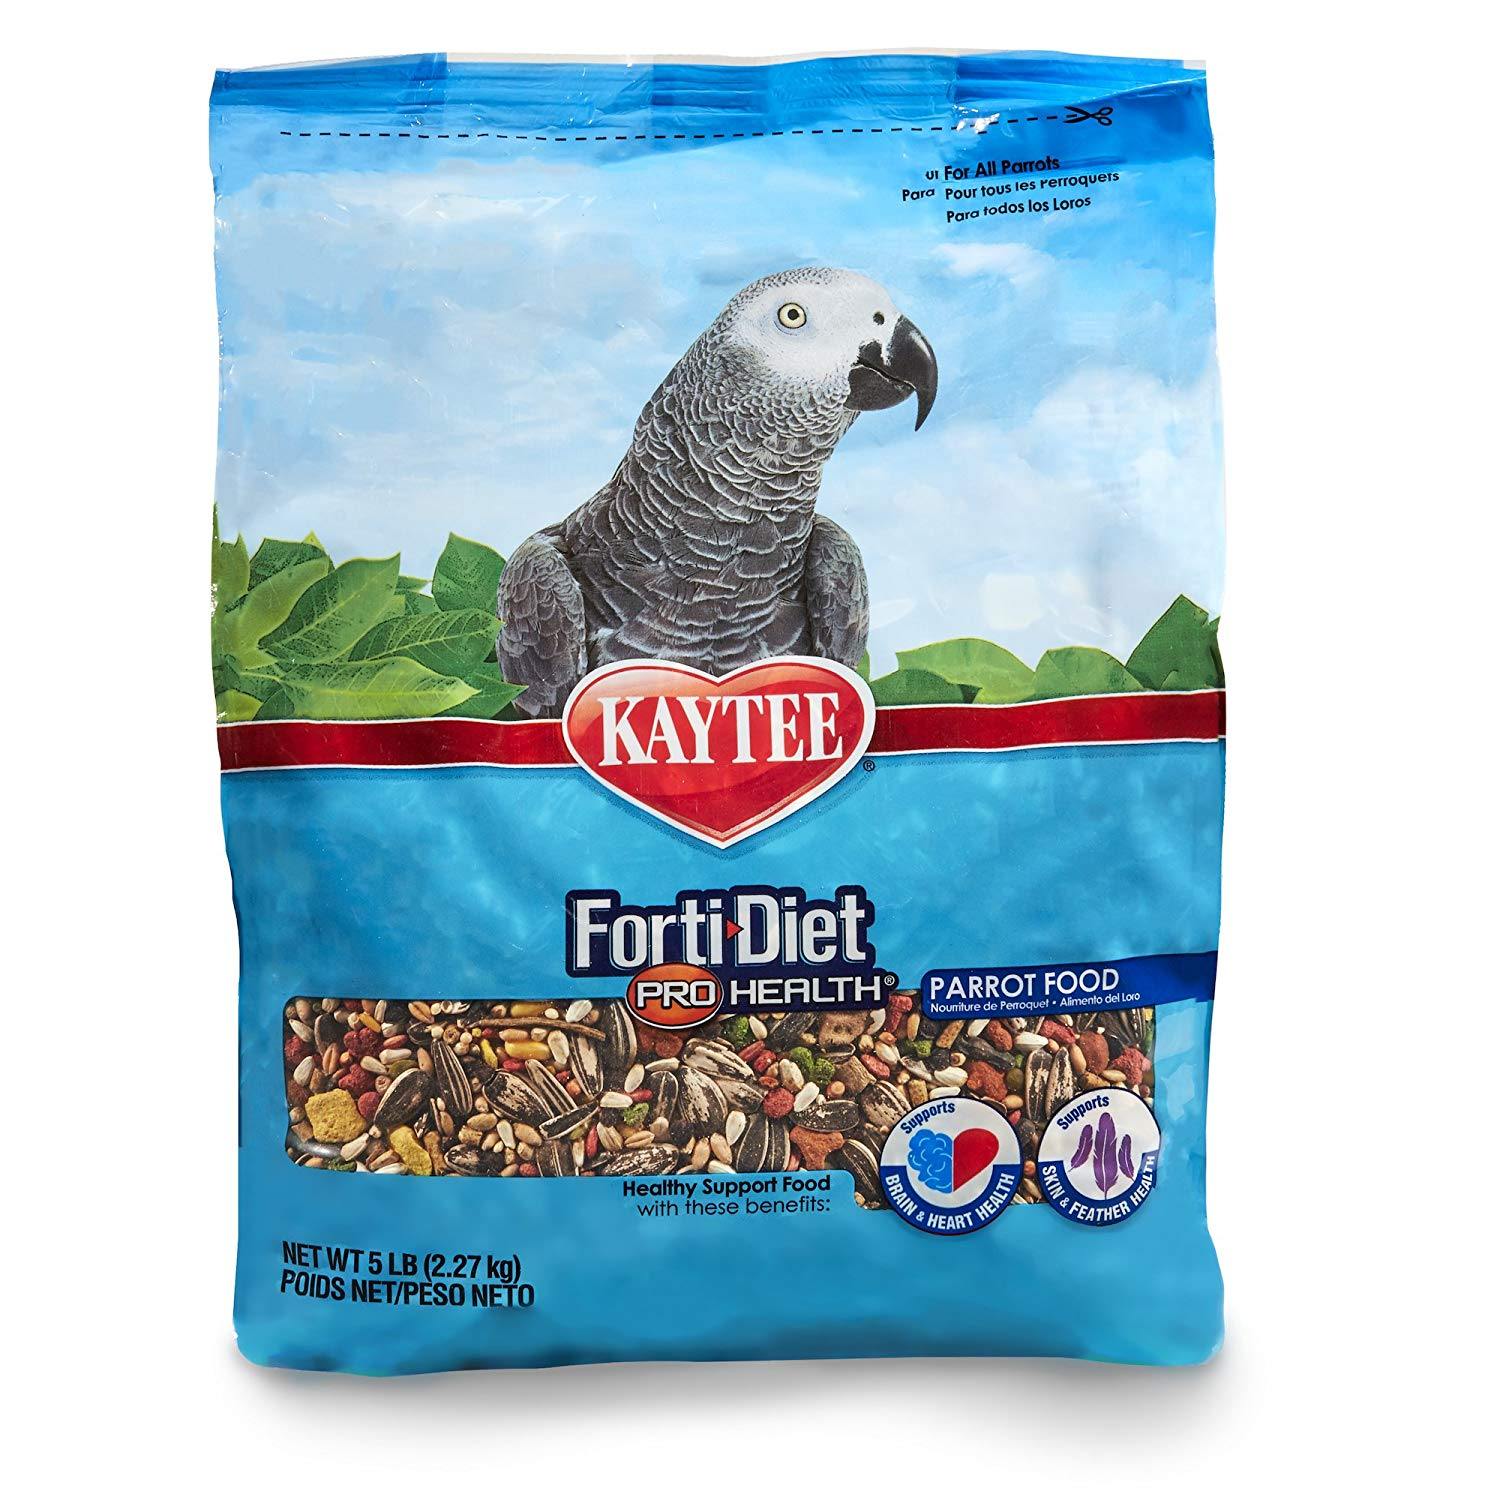 Kaytee Forti Diet Pro Health Parrot Food - 2 kg